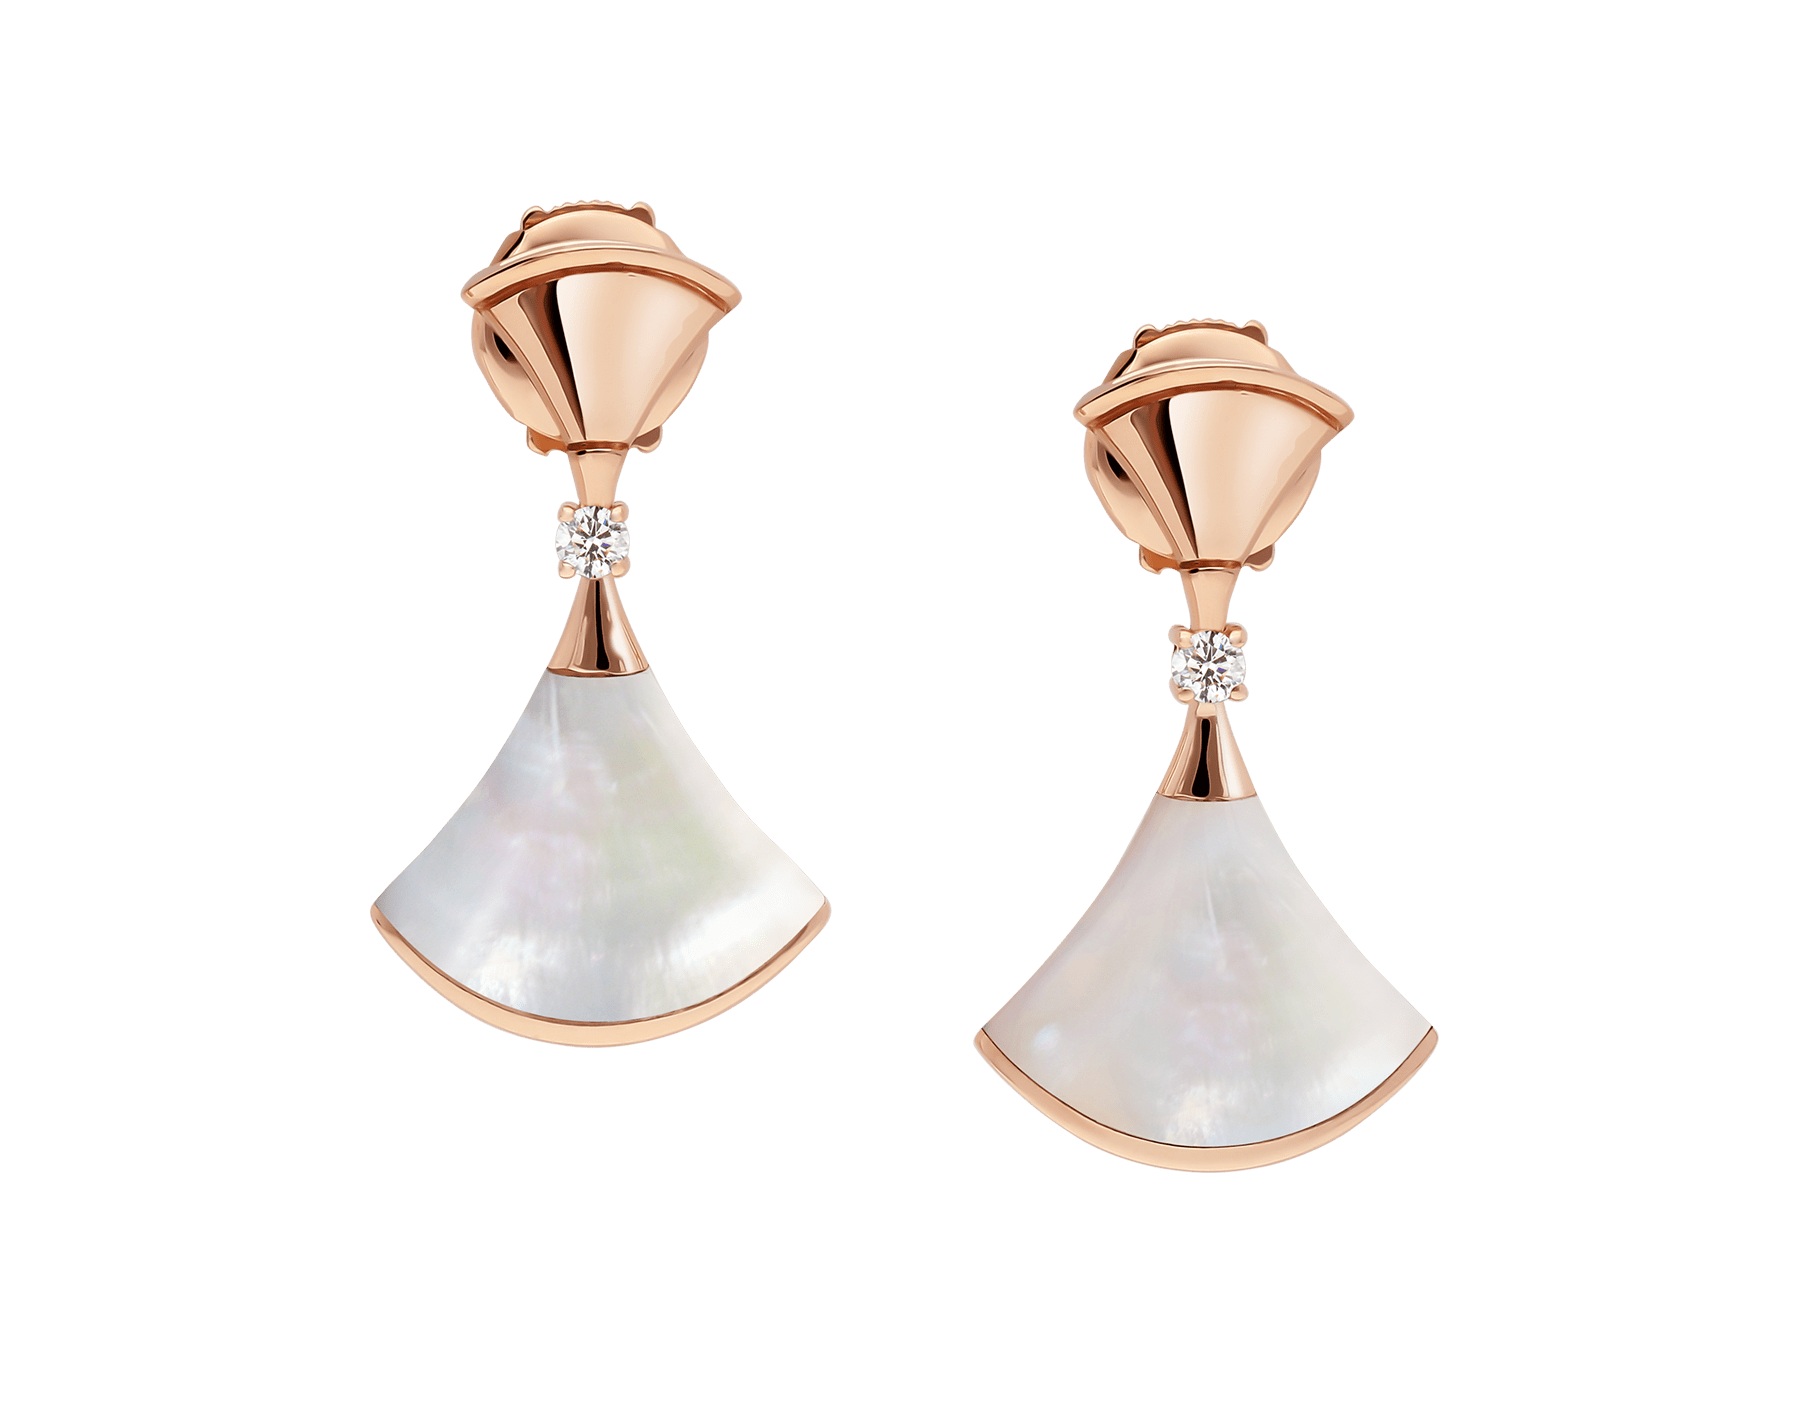 DIVAS' DREAM earrings in 18 kt rose gold set with mother-of-pearl and diamonds. 350740 image 1